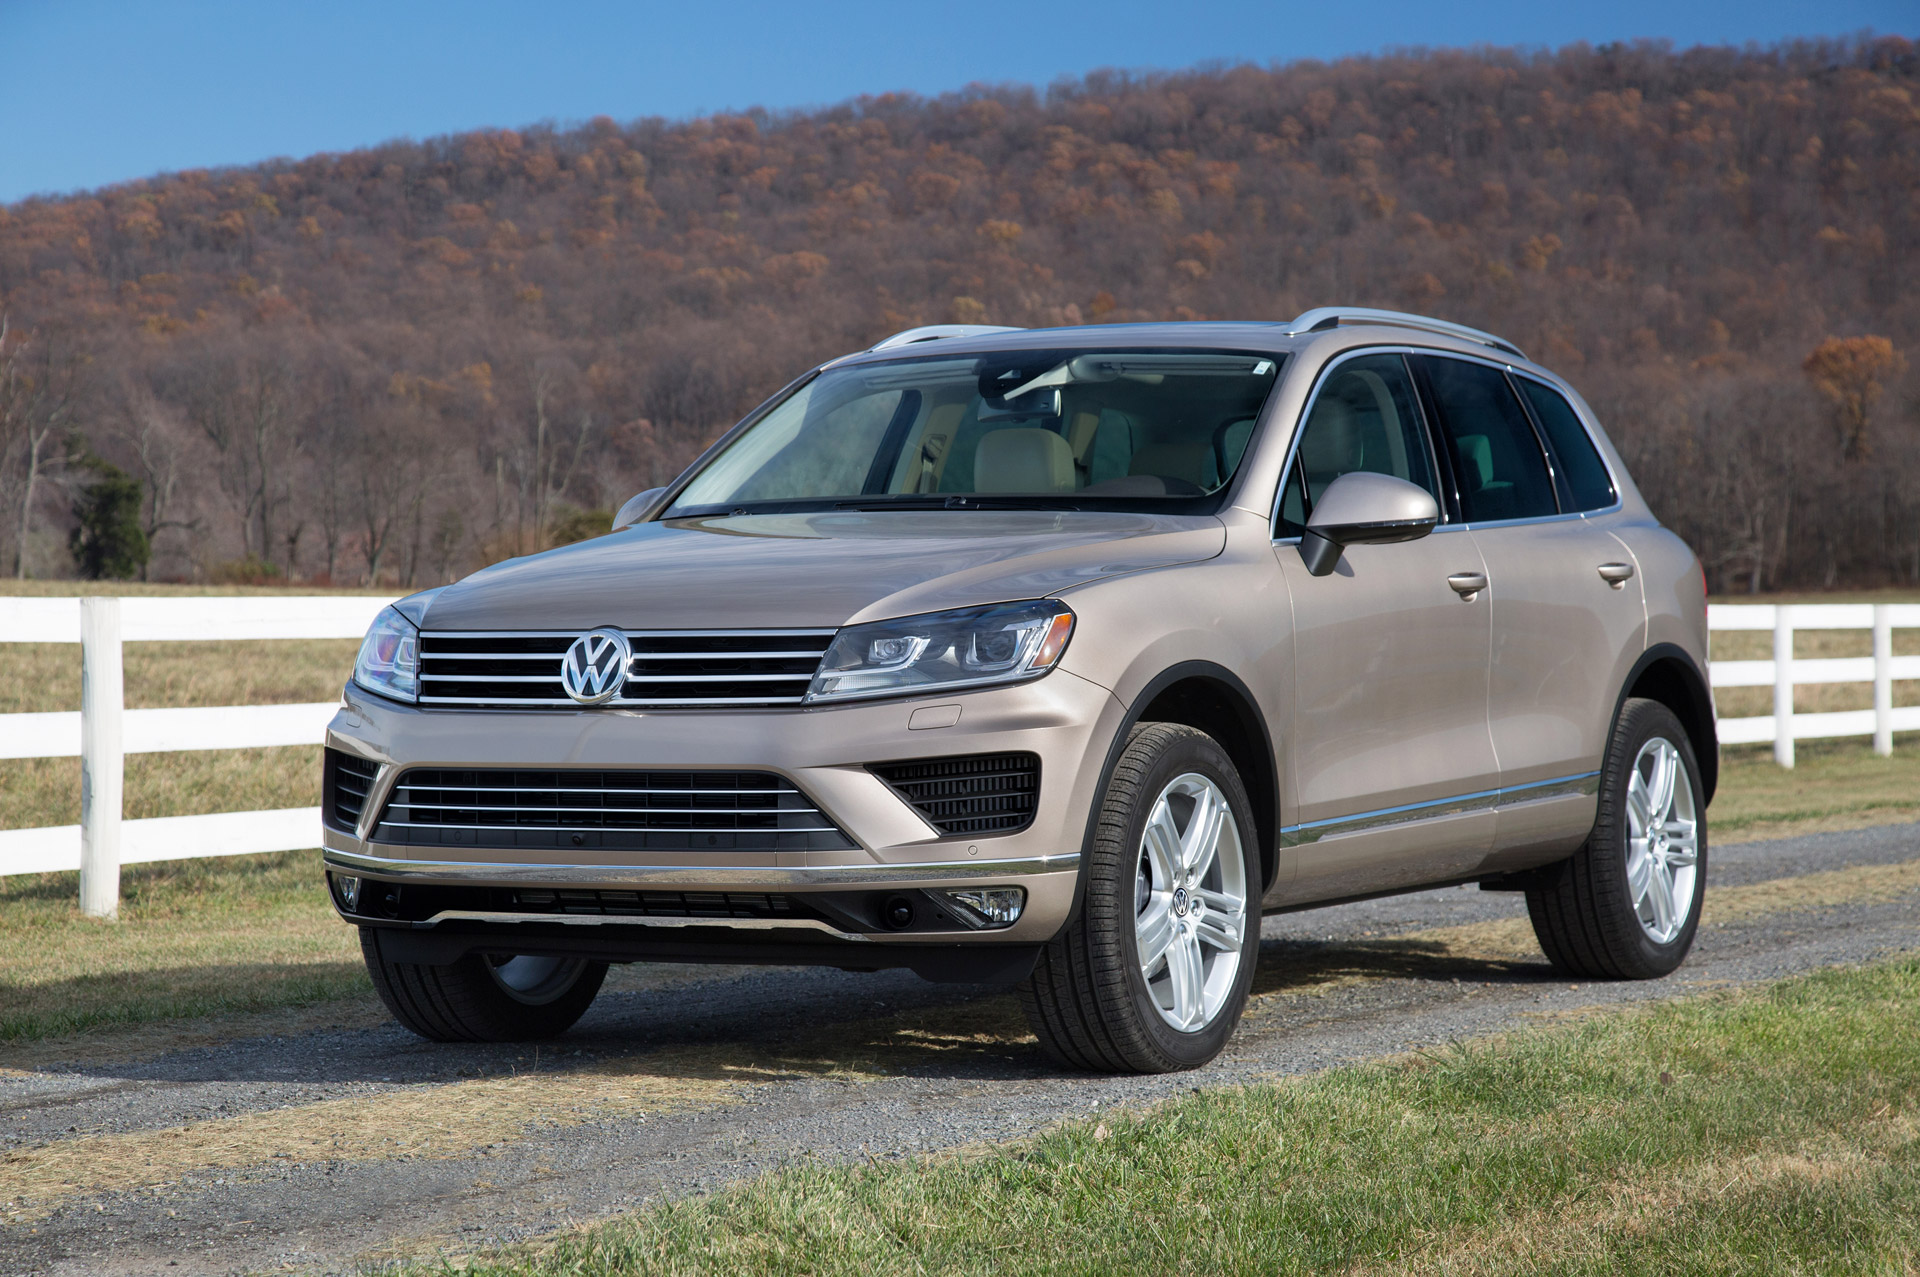 2017 volkswagen touareg preview. Black Bedroom Furniture Sets. Home Design Ideas